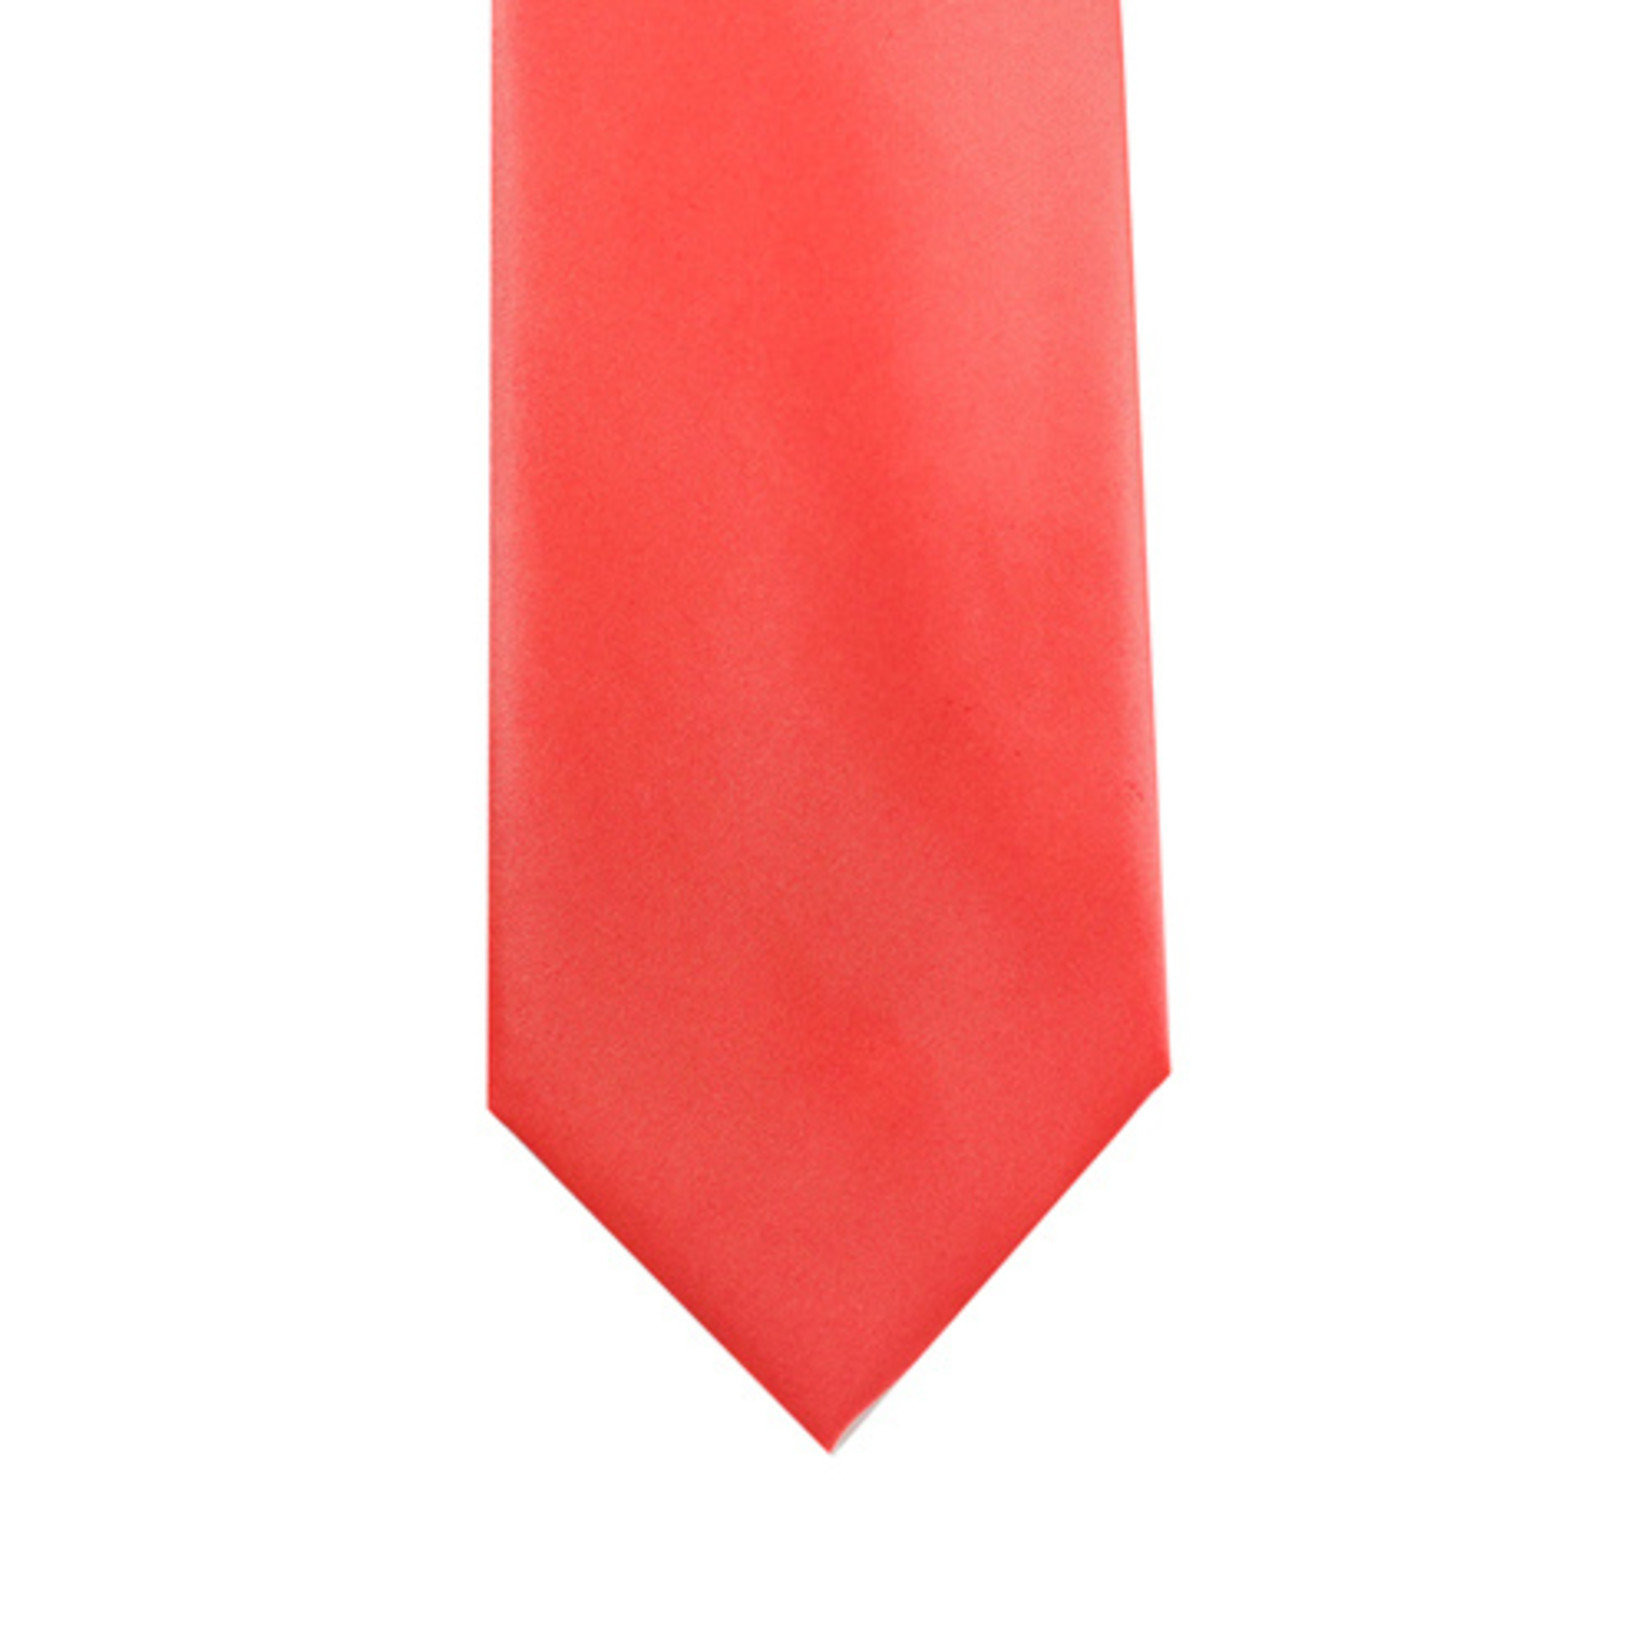 Knotz M100-44 Solid Coral Tie